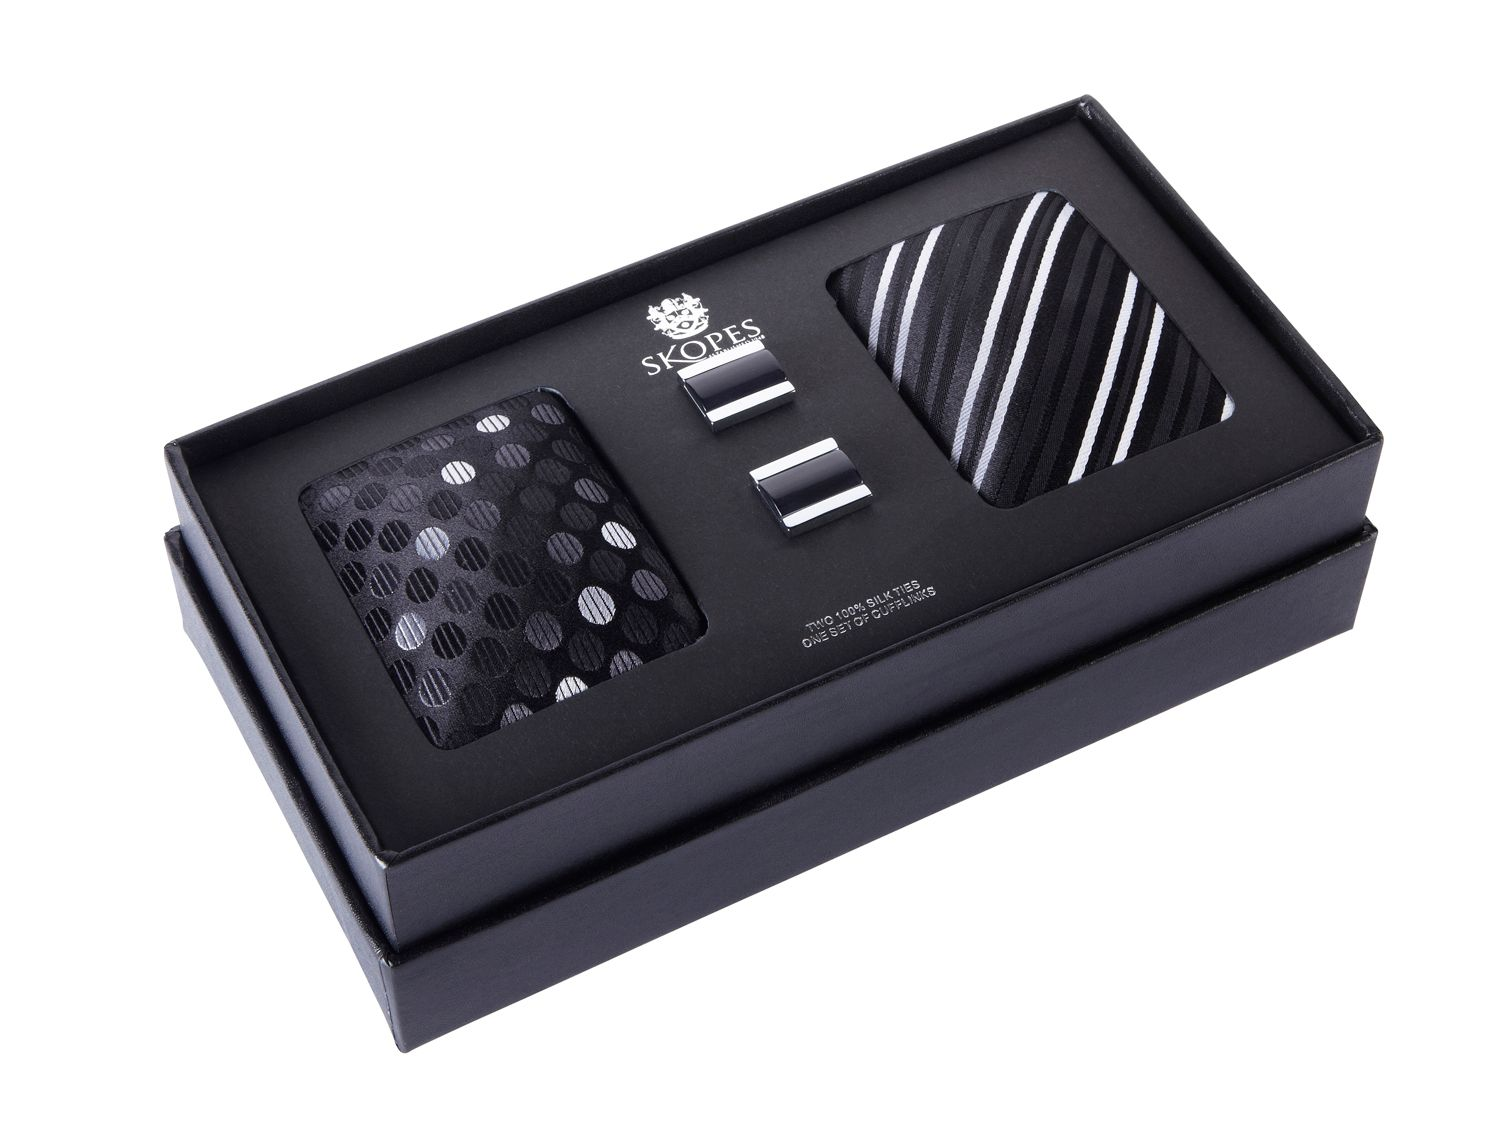 Twin silk tie and cufflink gift set